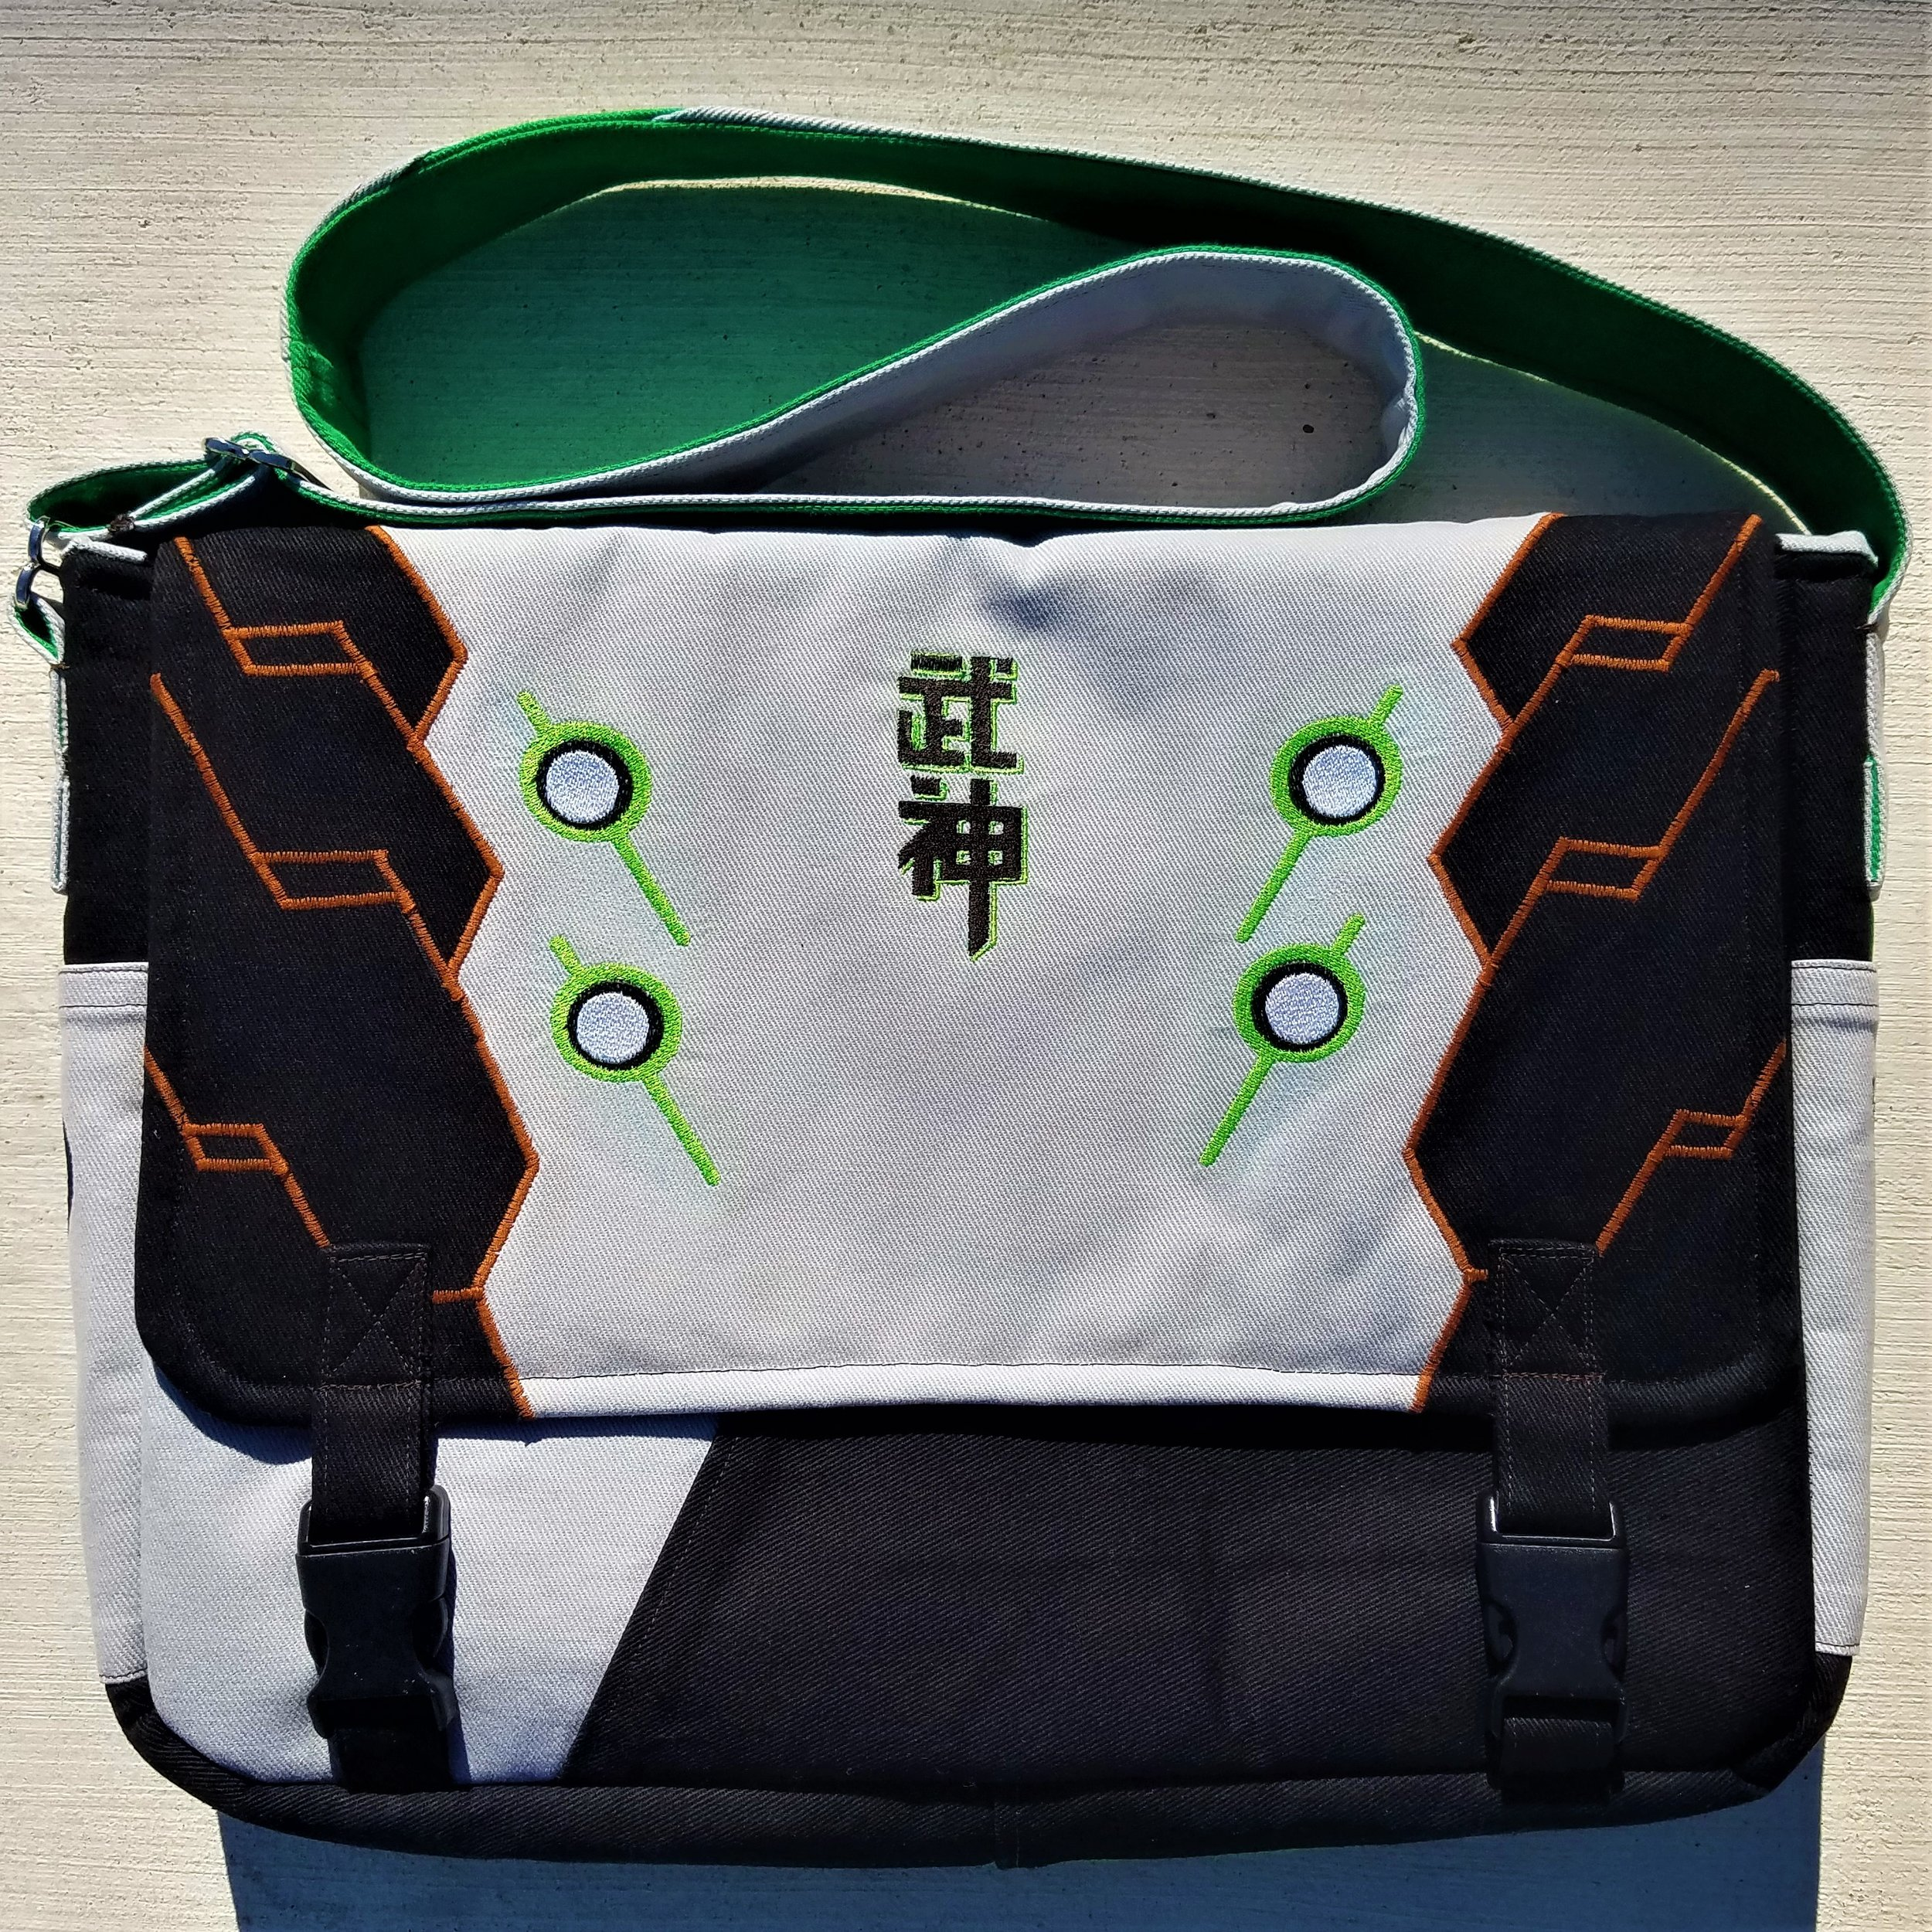 Tock Custom - Overwatch Genji Bag